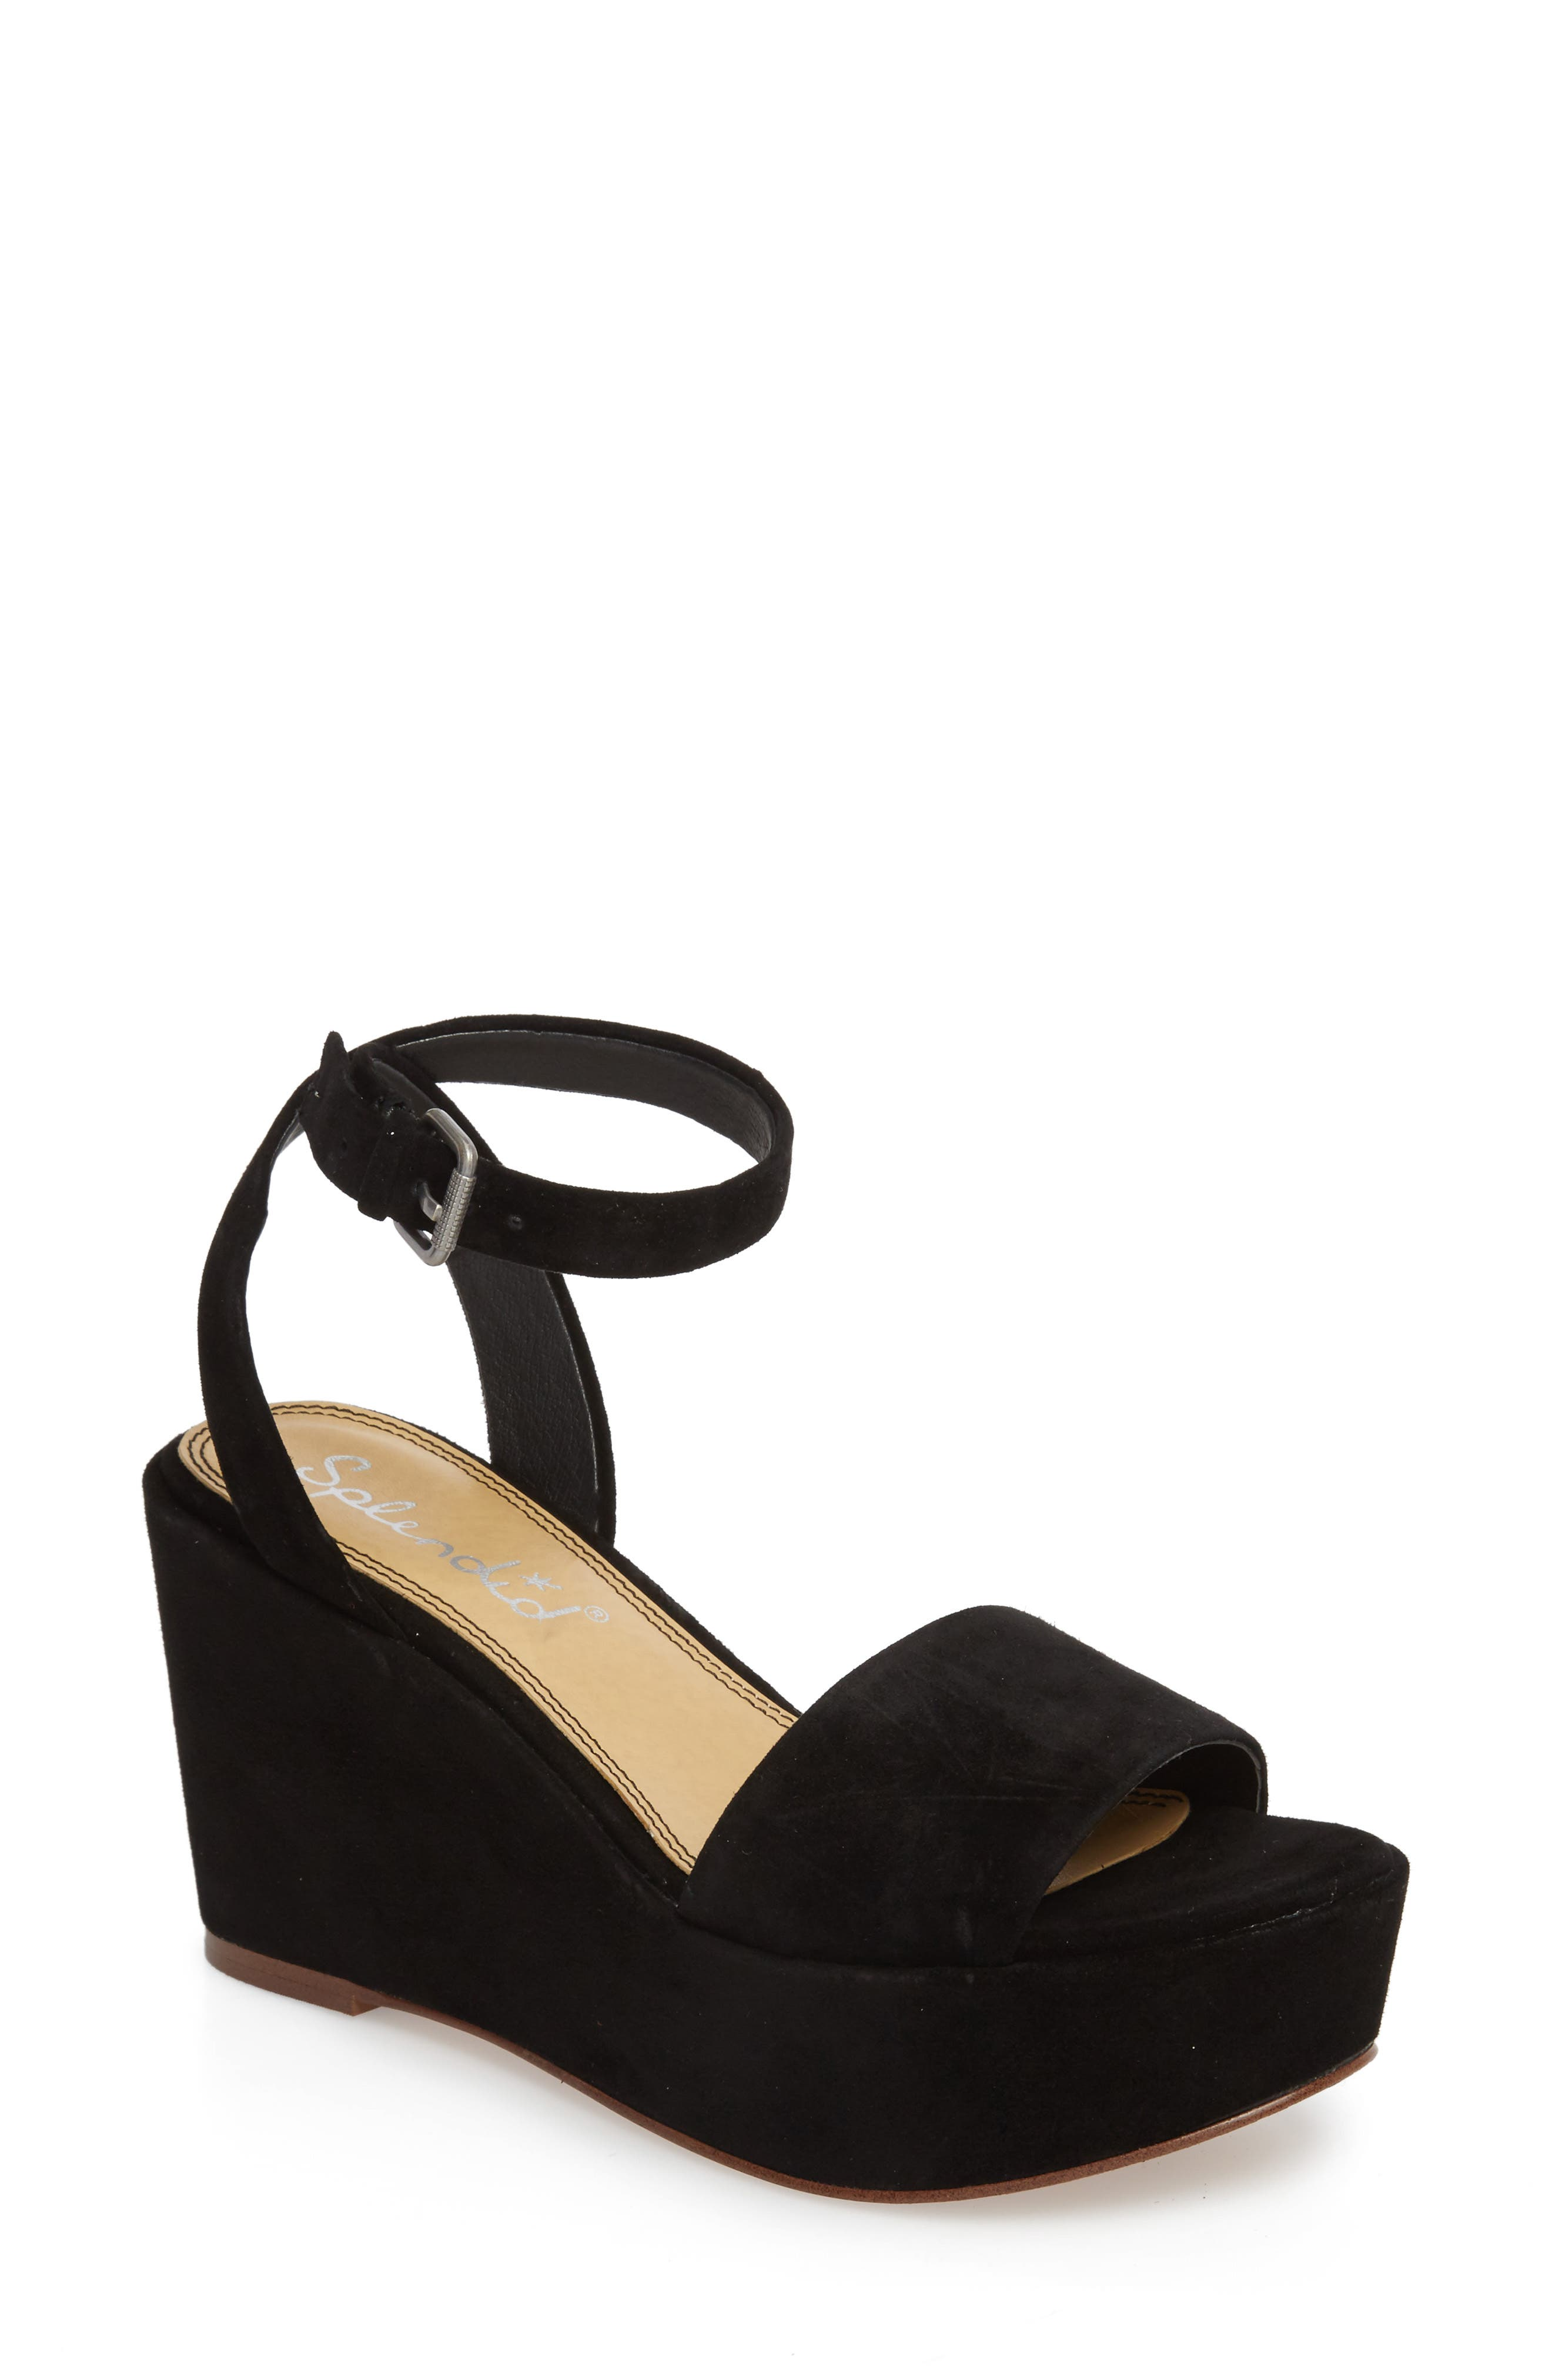 Felix Platform Wedge Sandal,                         Main,                         color, BLACK SUEDE